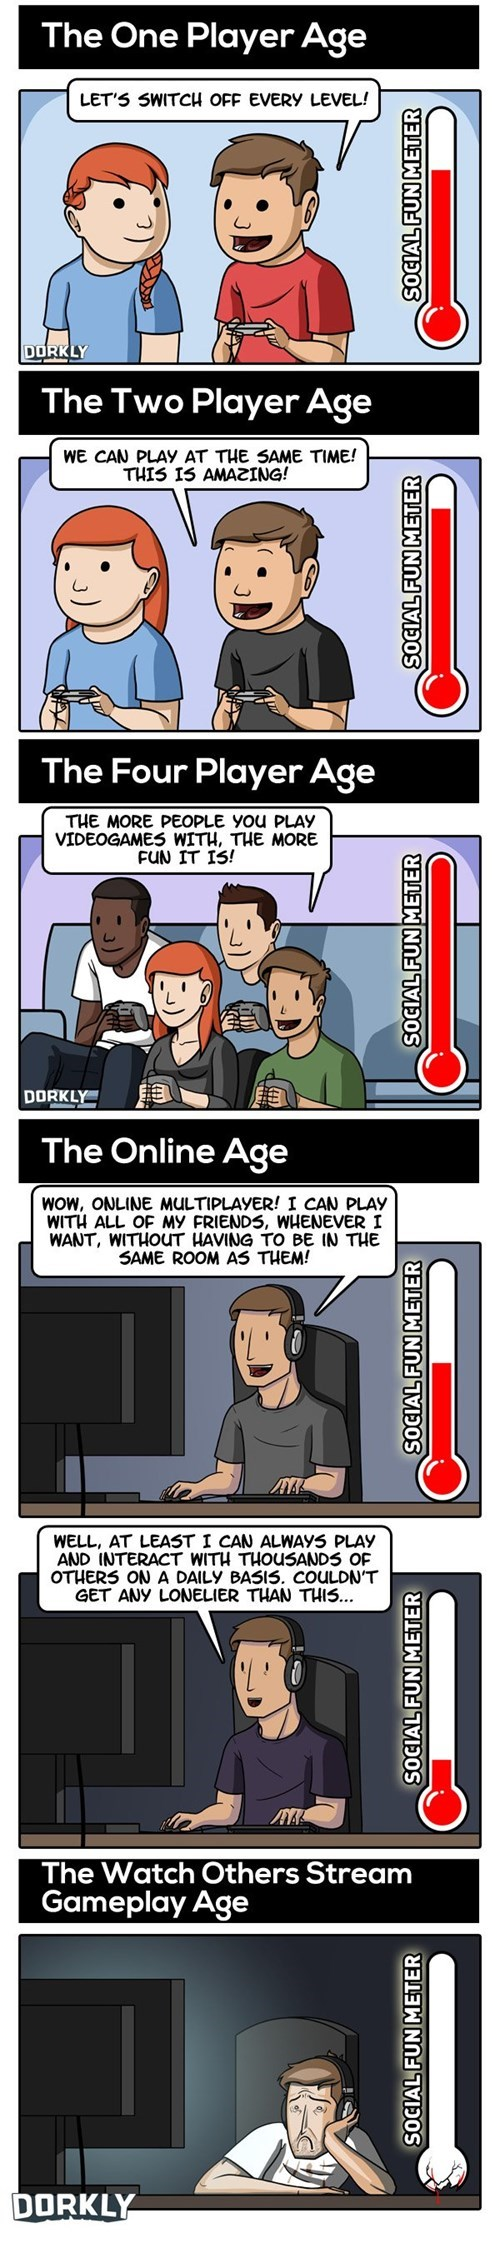 dorkly,youtube,comics,video games,webcomics